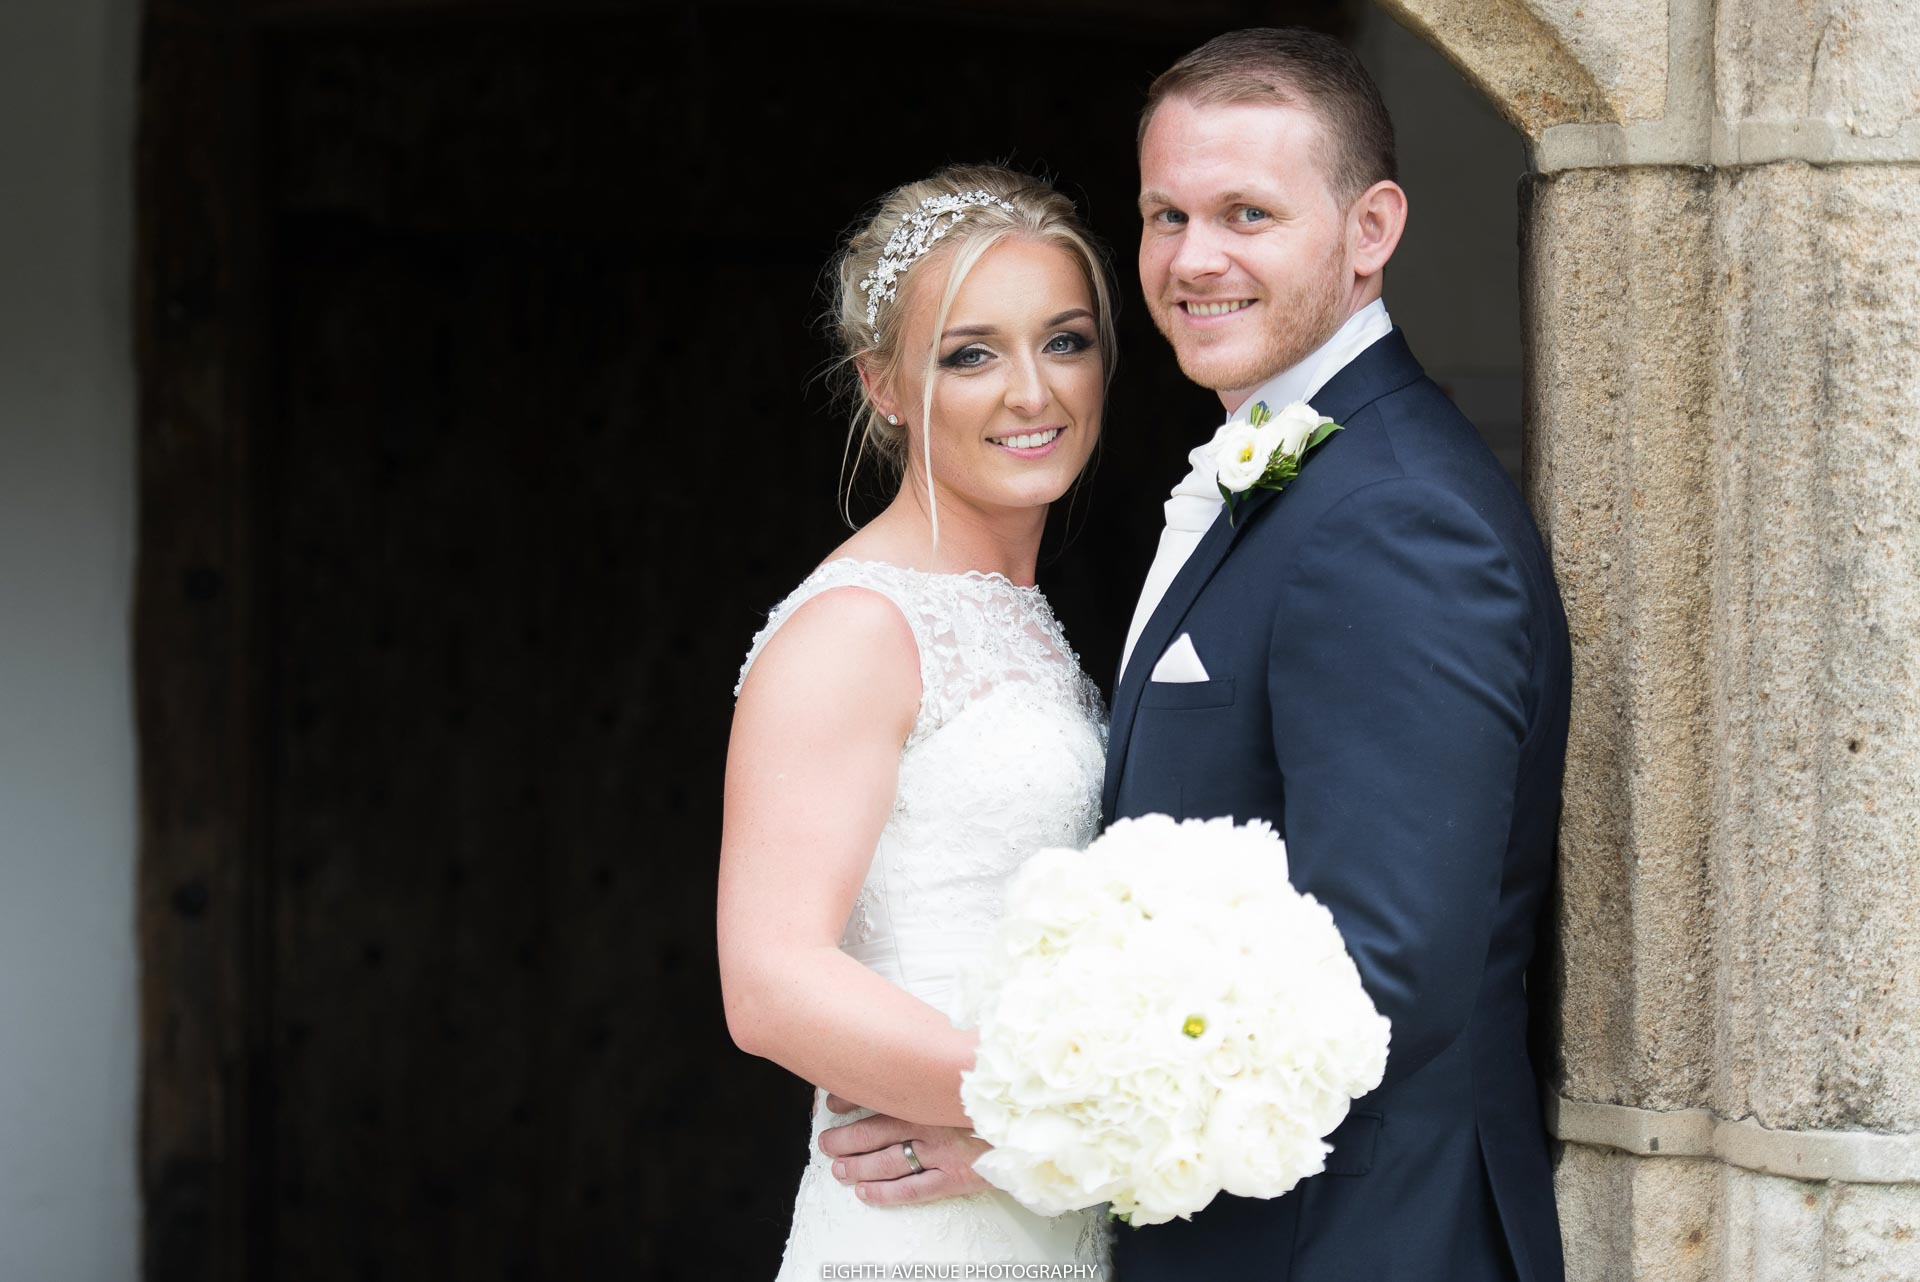 Bride and groom formal photograph at church wedding